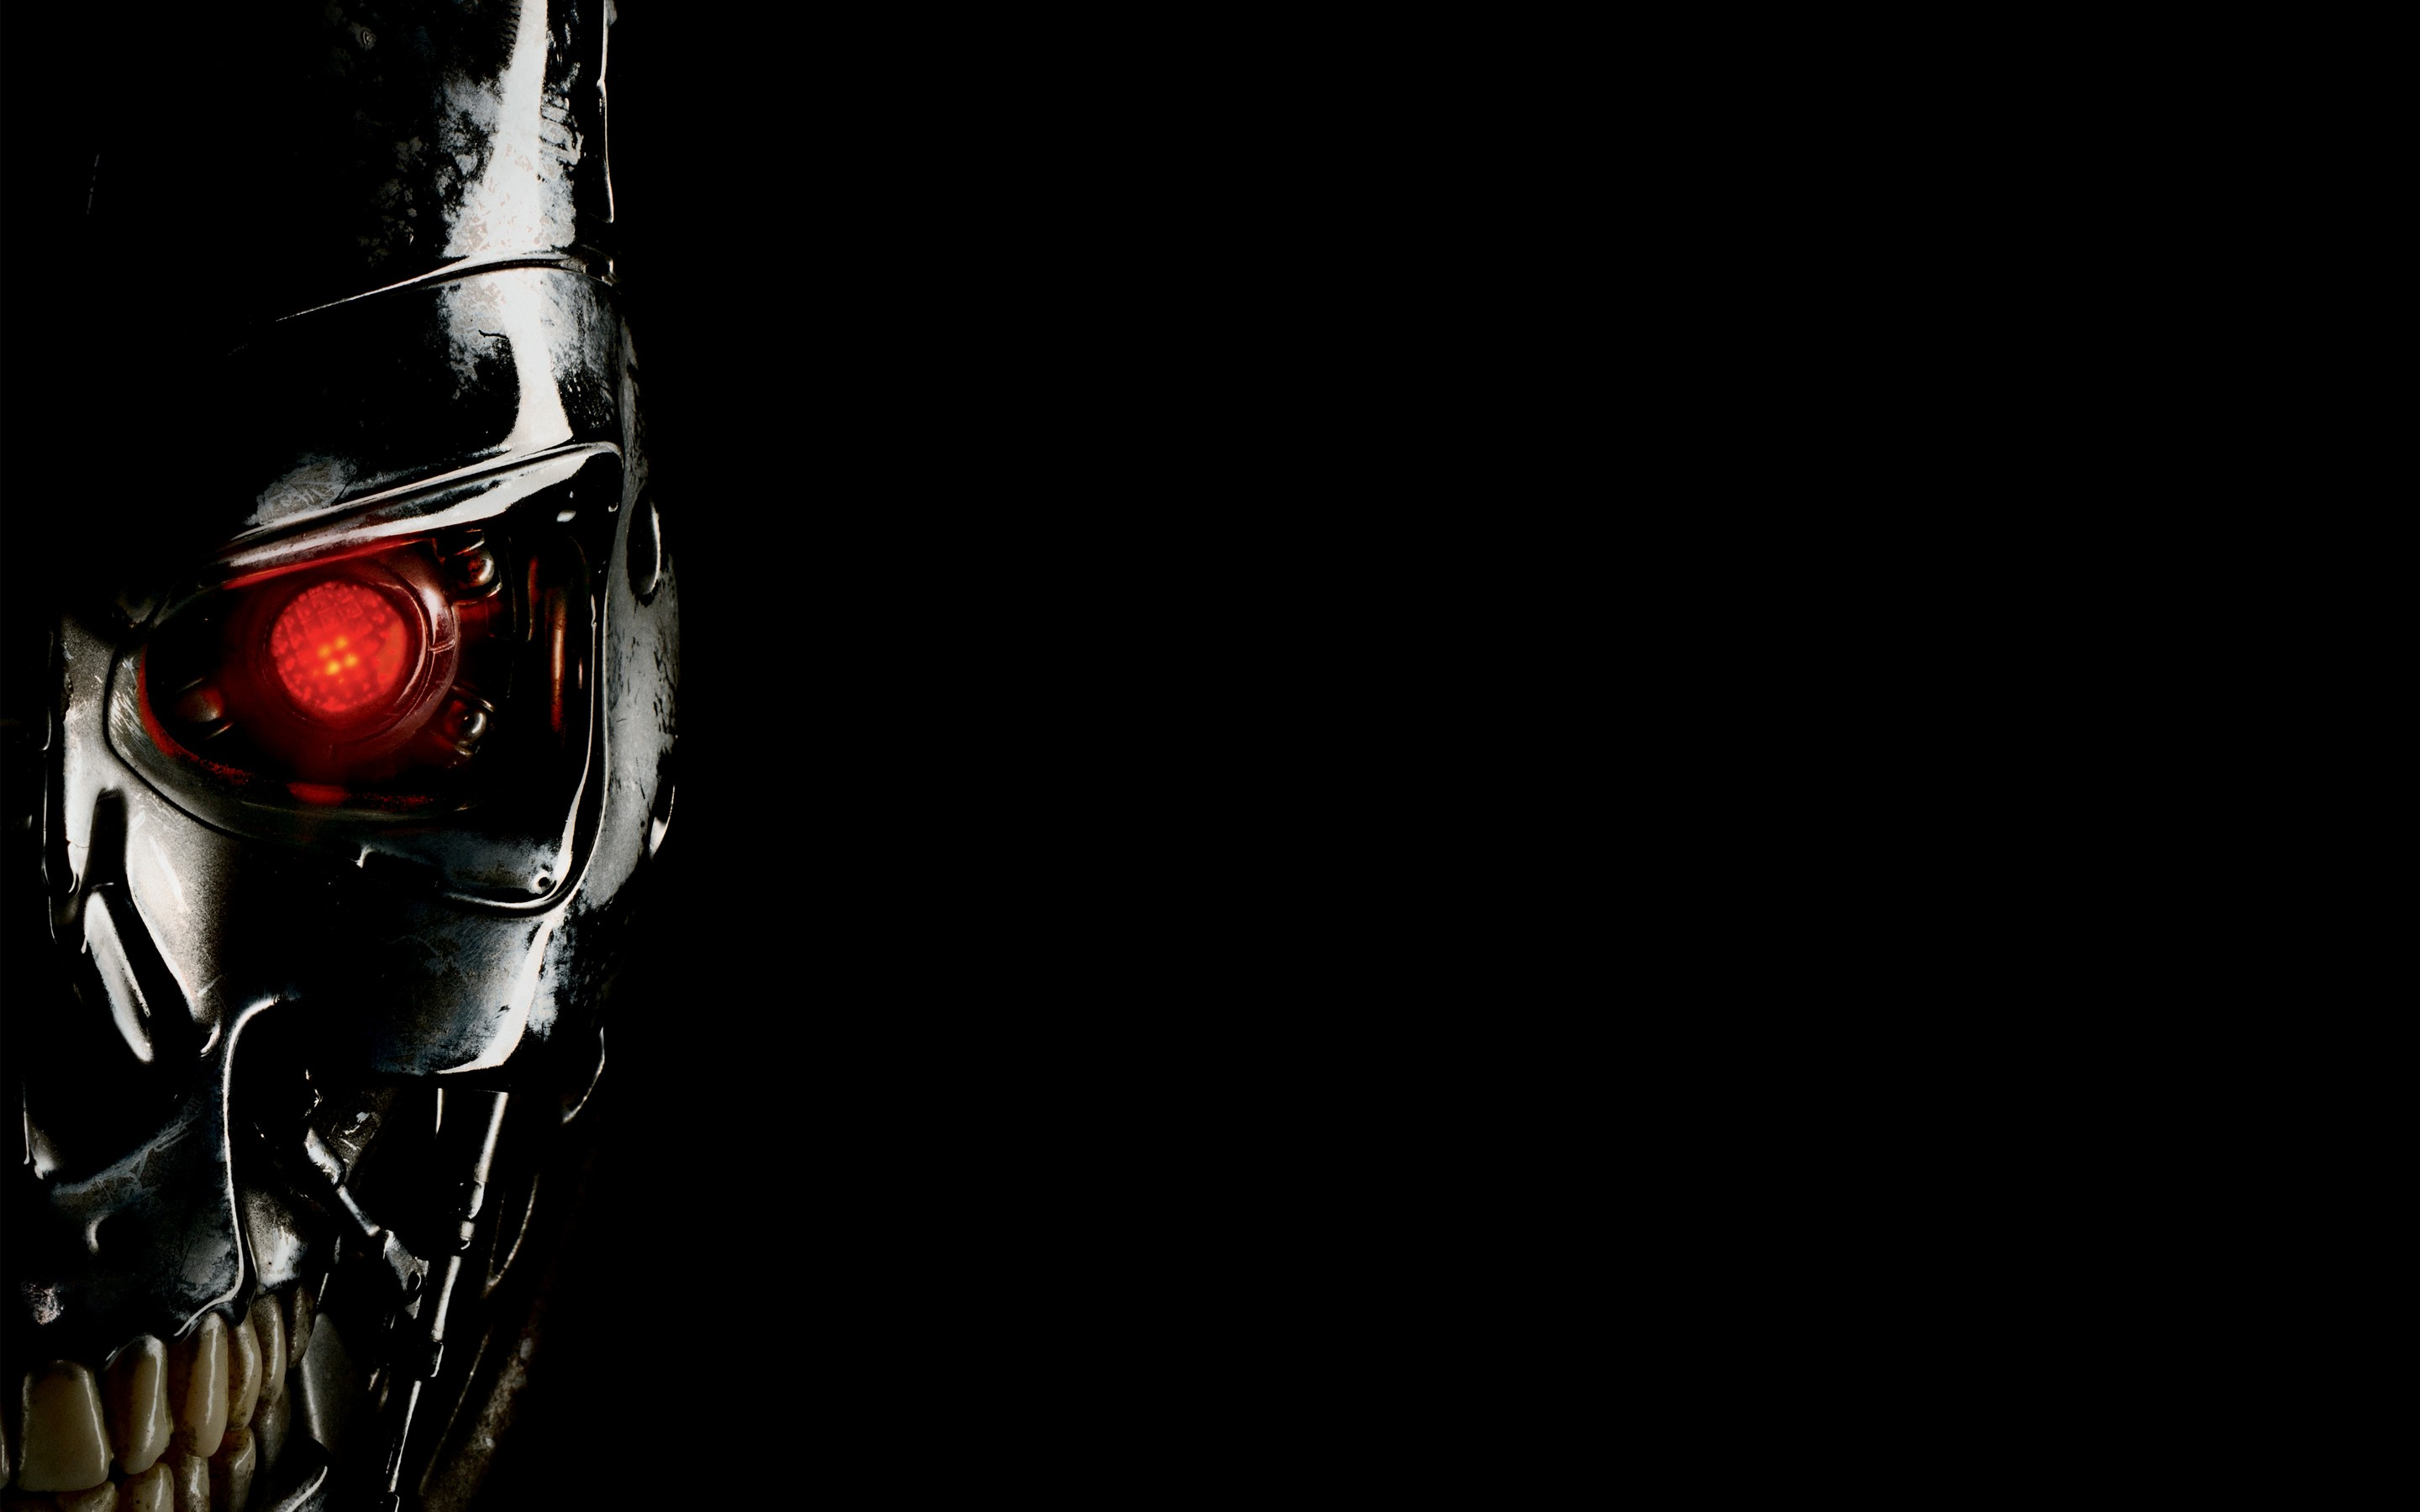 Bmw 3d Hd Wallpapers Terminator Genisys T 800 Hd Movies 4k Wallpapers Images